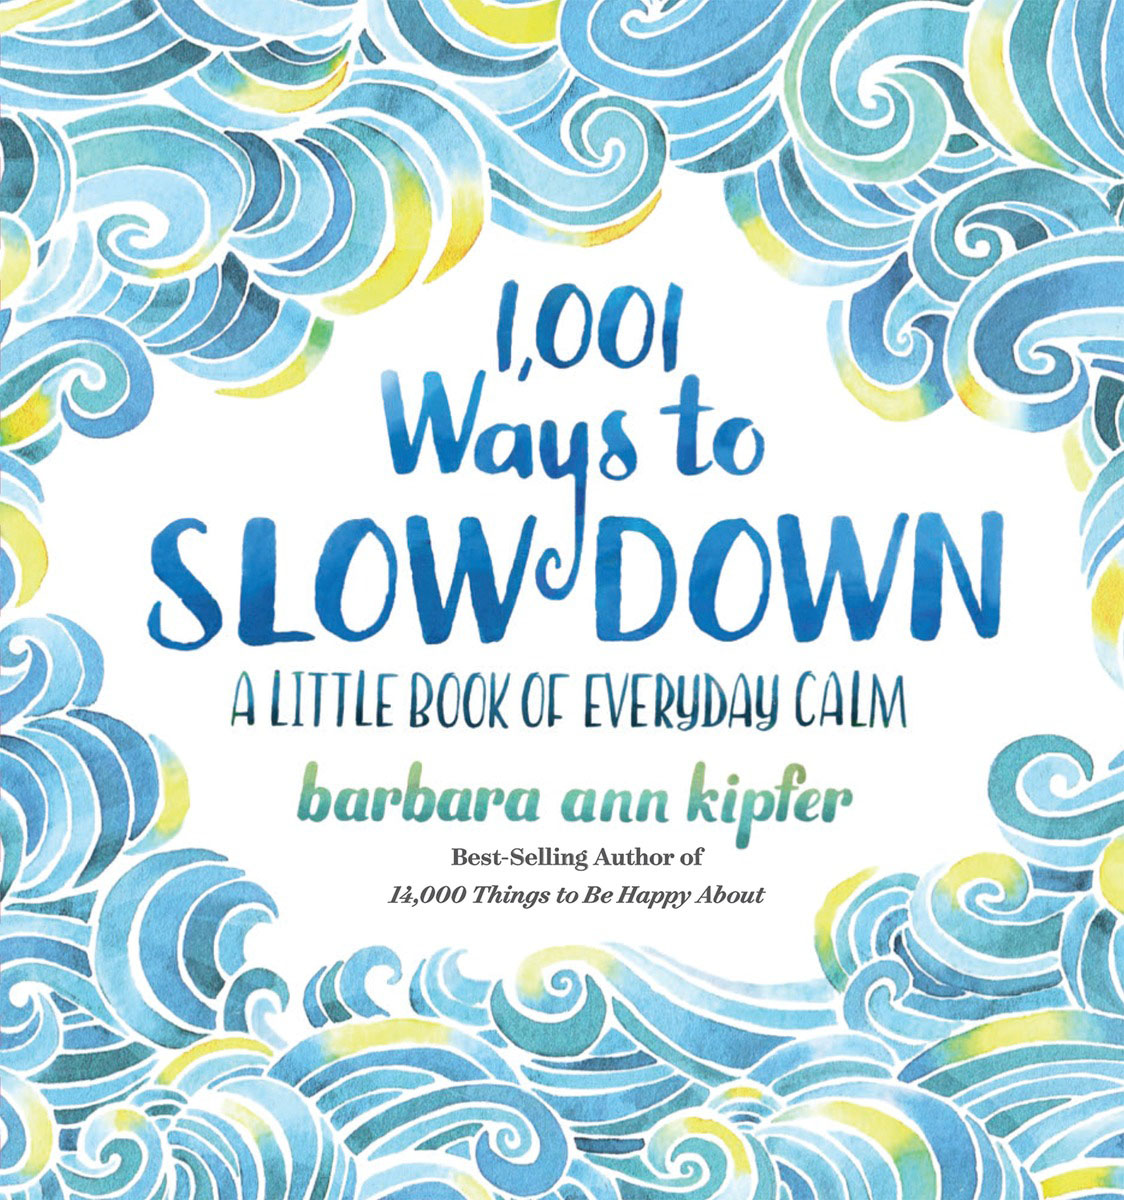 1,001 Ways to Slow Down seeing things as they are